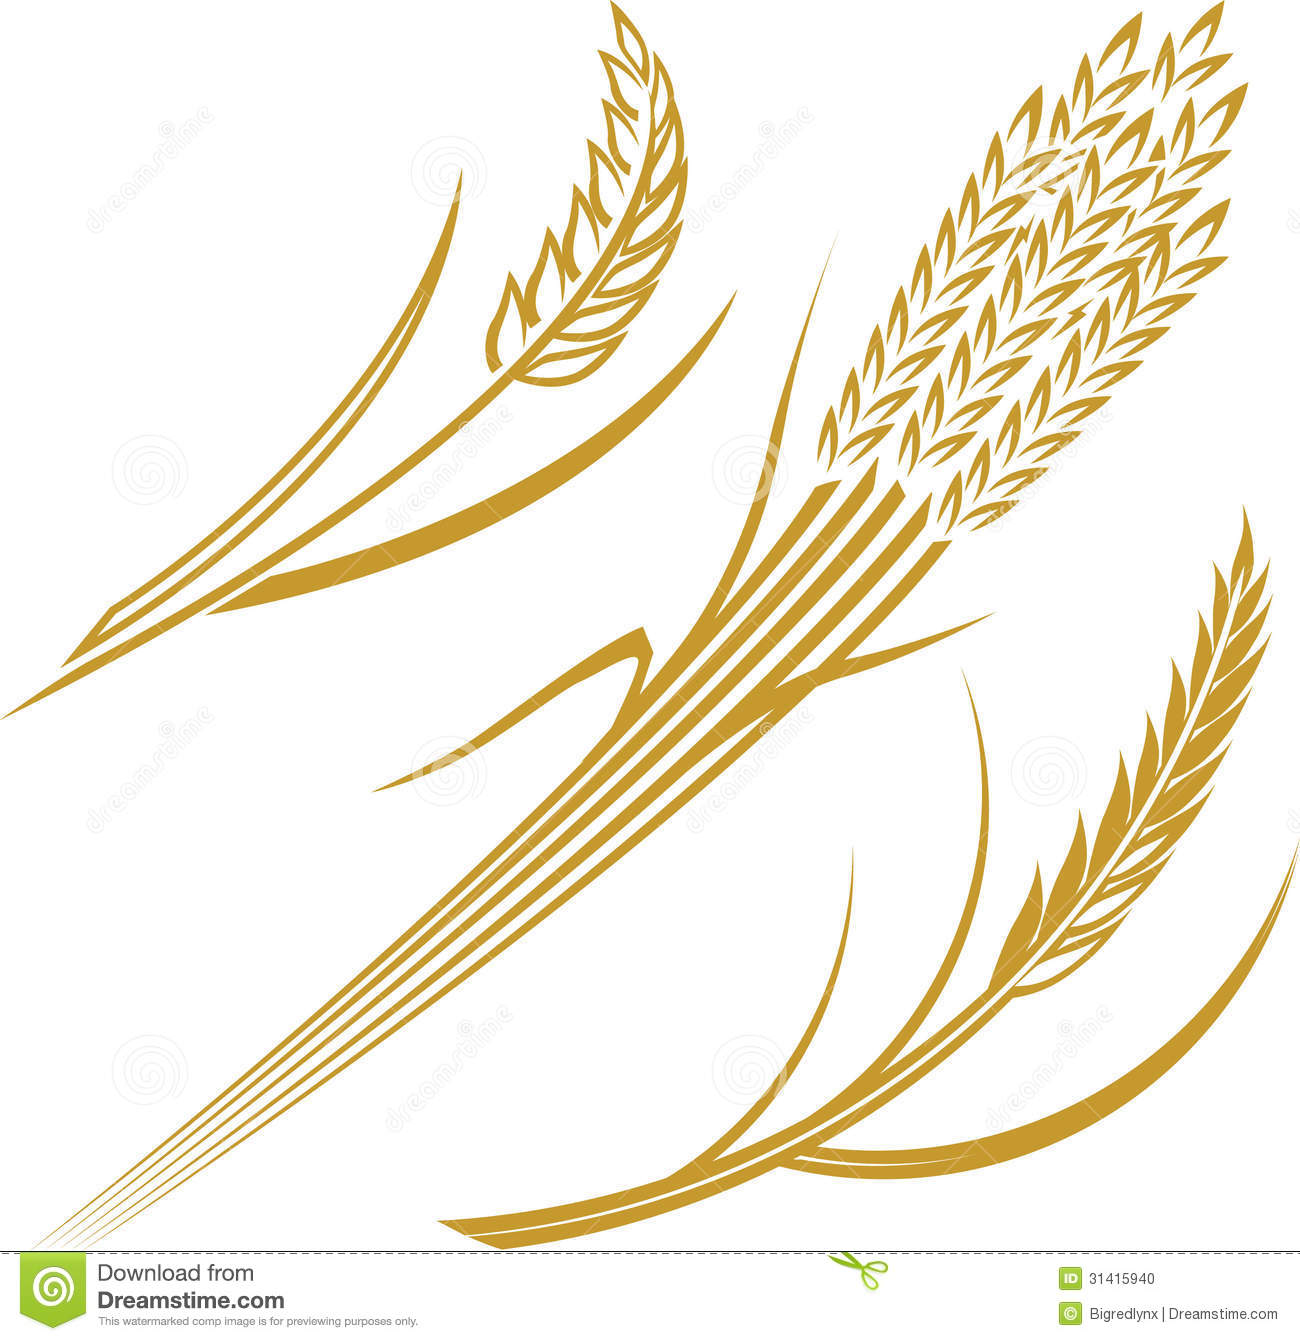 Clipart wheat stalk.